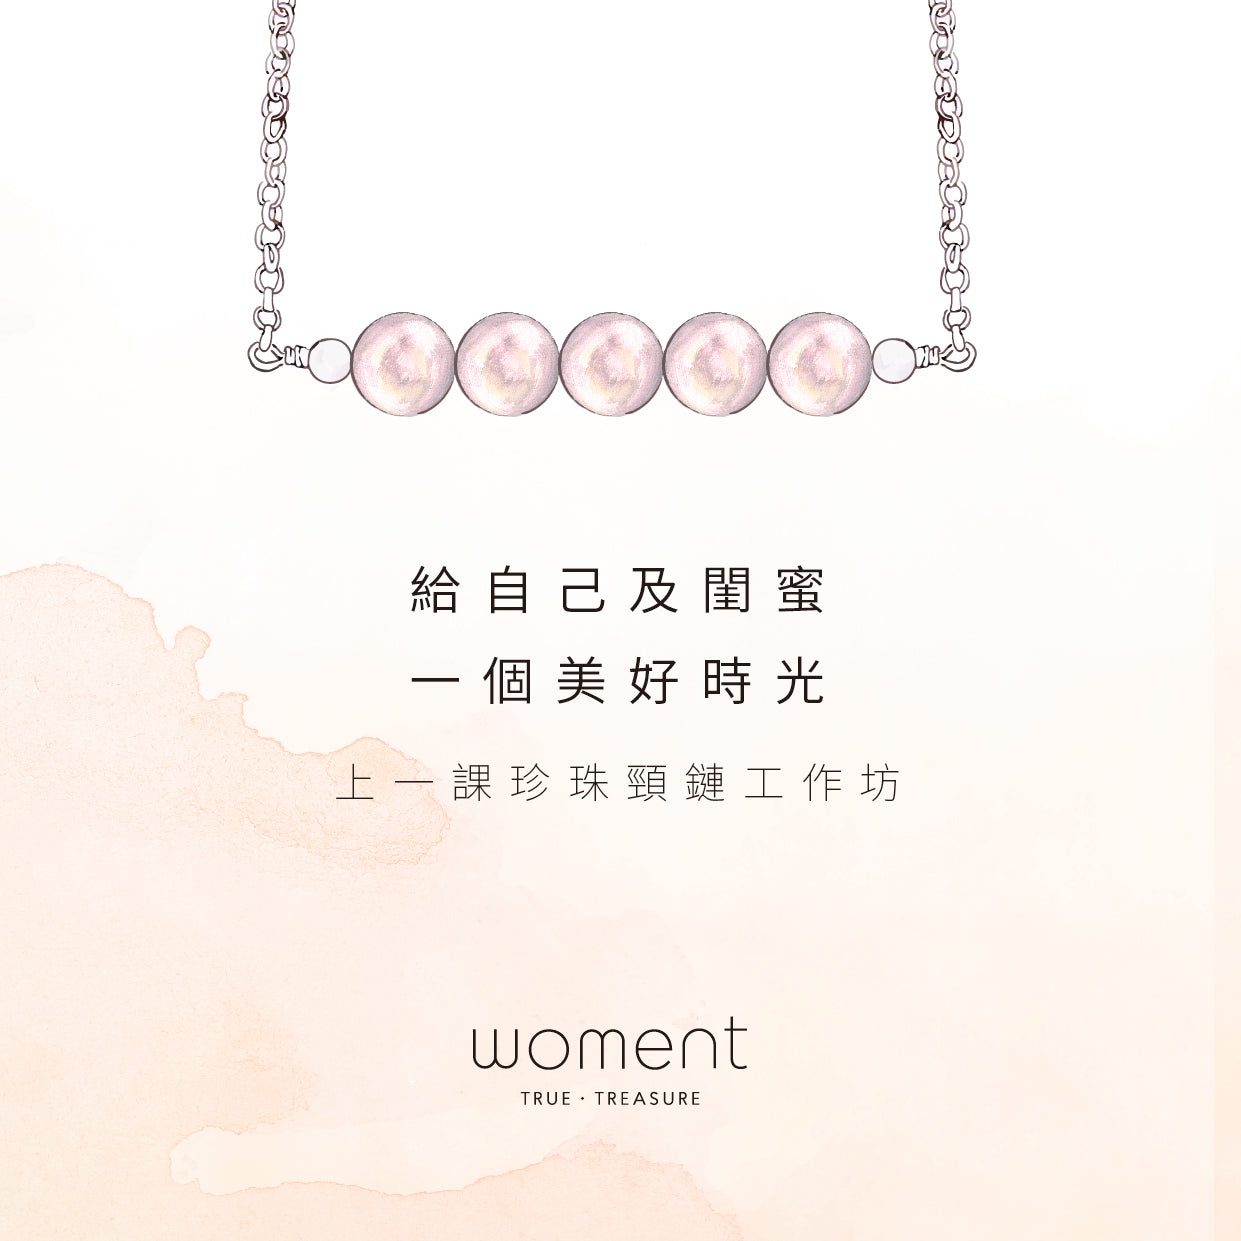 Class A - D.I.Y 珍珠頸鏈工作坊 - 11/10/2019 - Woment Designer Jewelry